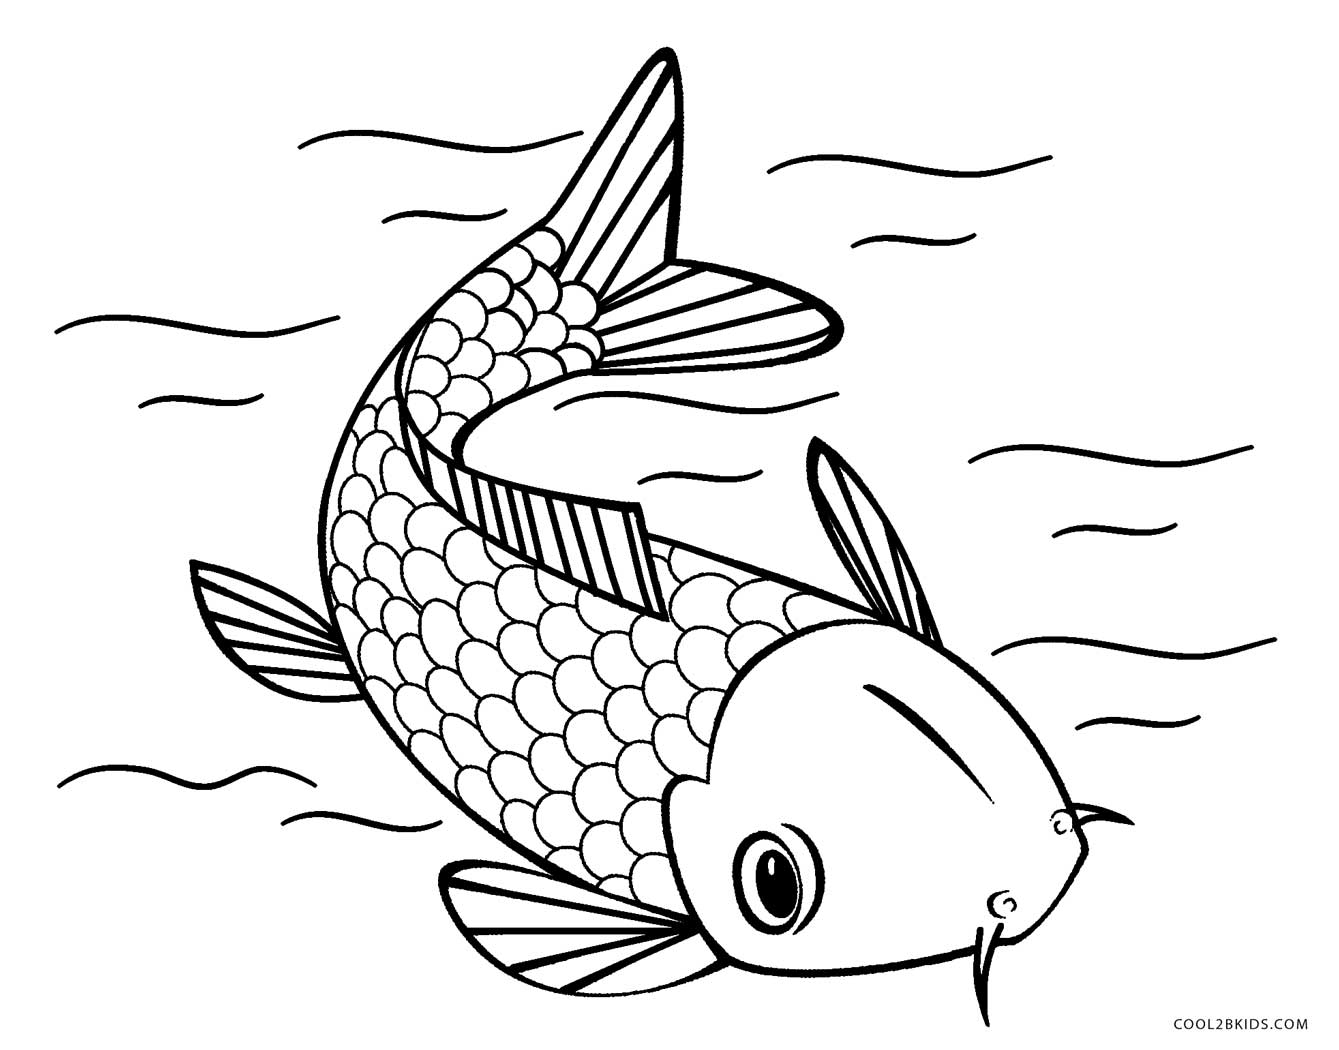 free coloring pages fish fish coloring pages for kids 14 pics how to draw in 1 fish coloring free pages